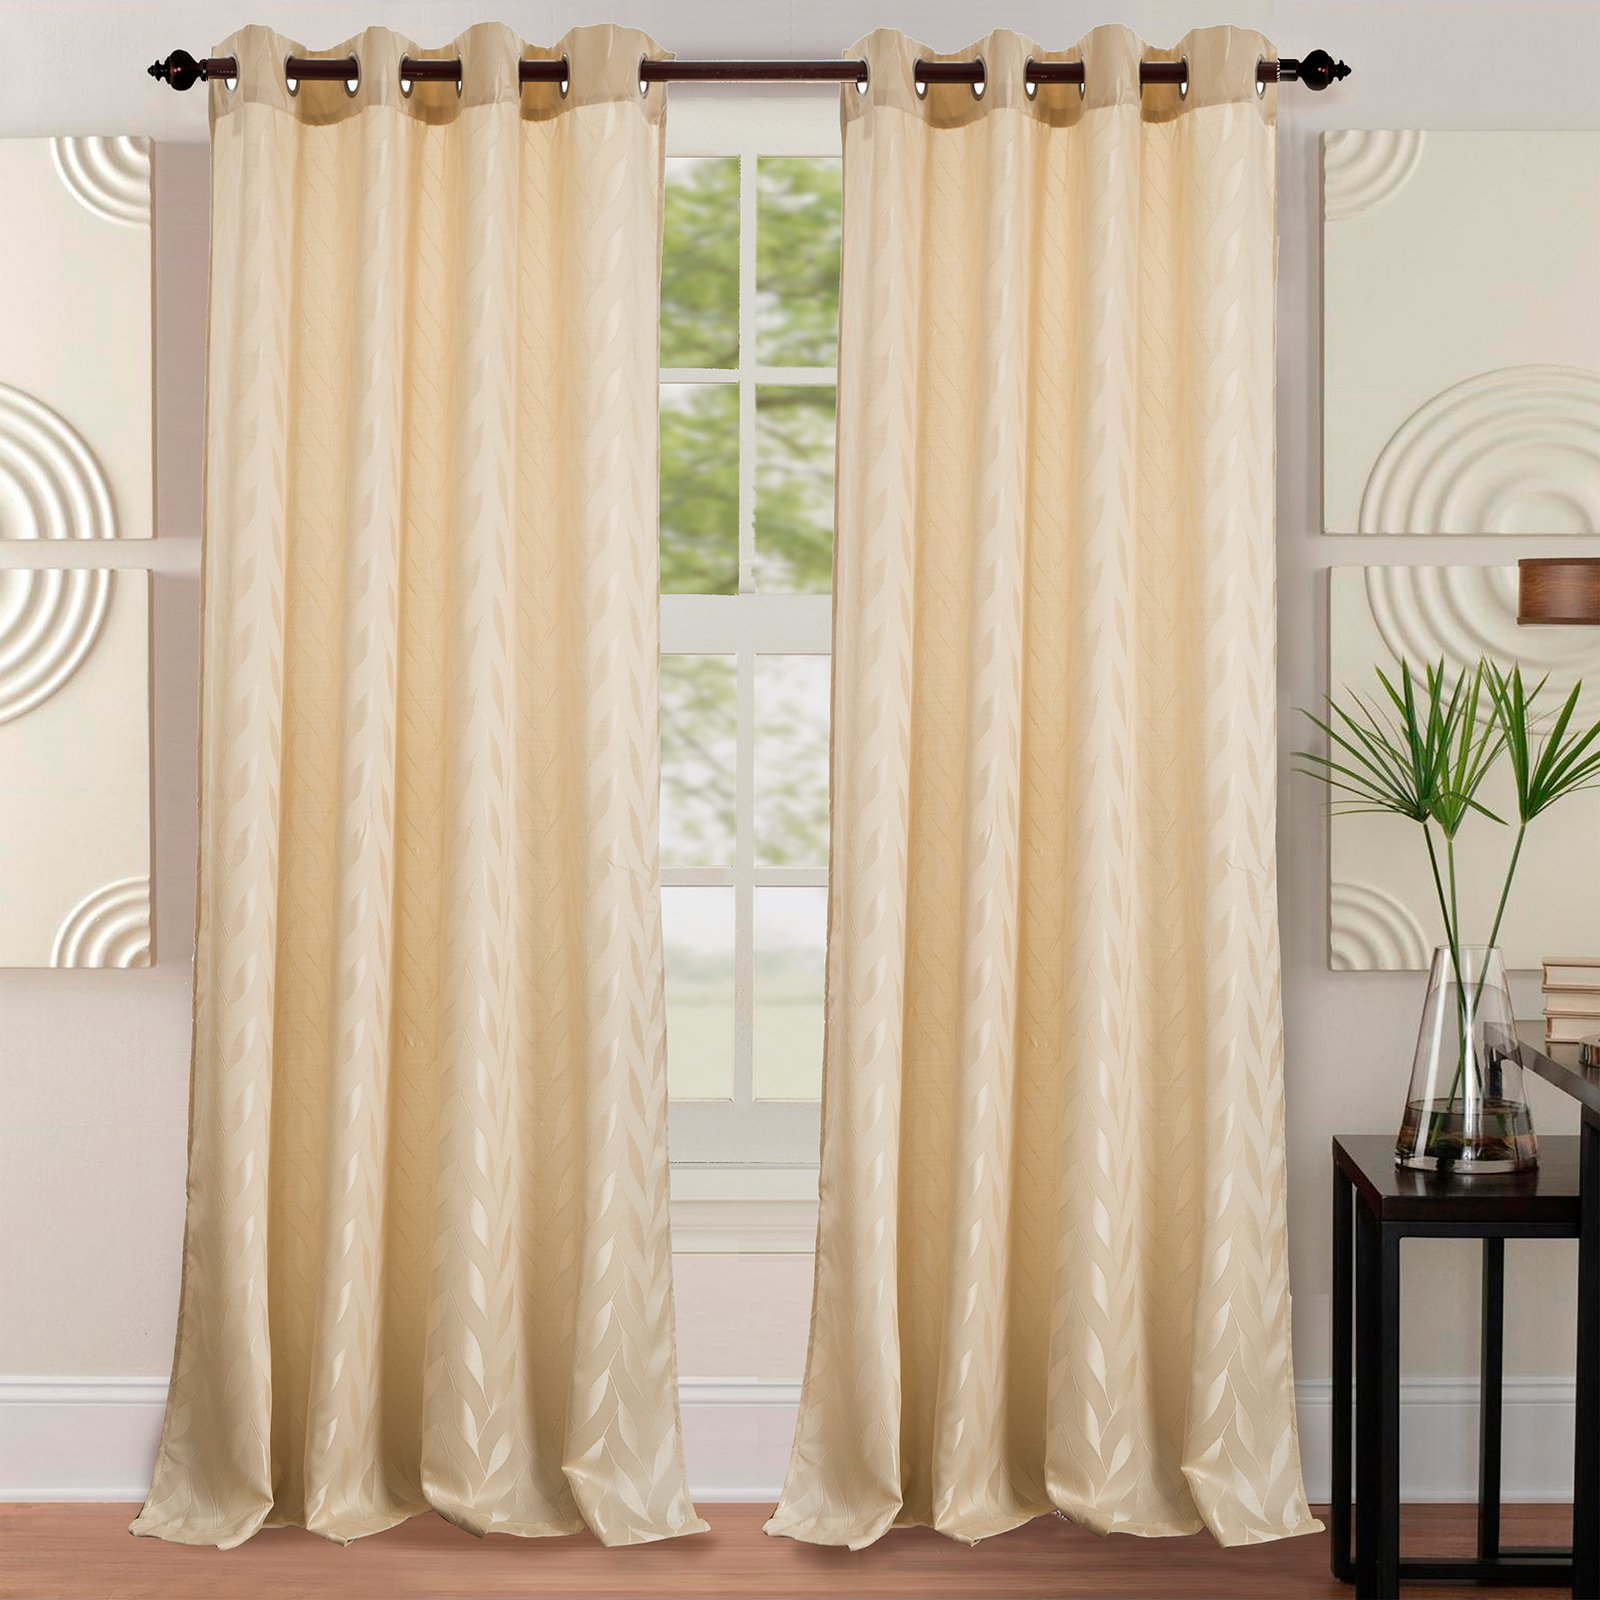 Napa Jacquard 54 x 84 in. Grommet Curtain Panel, Beige